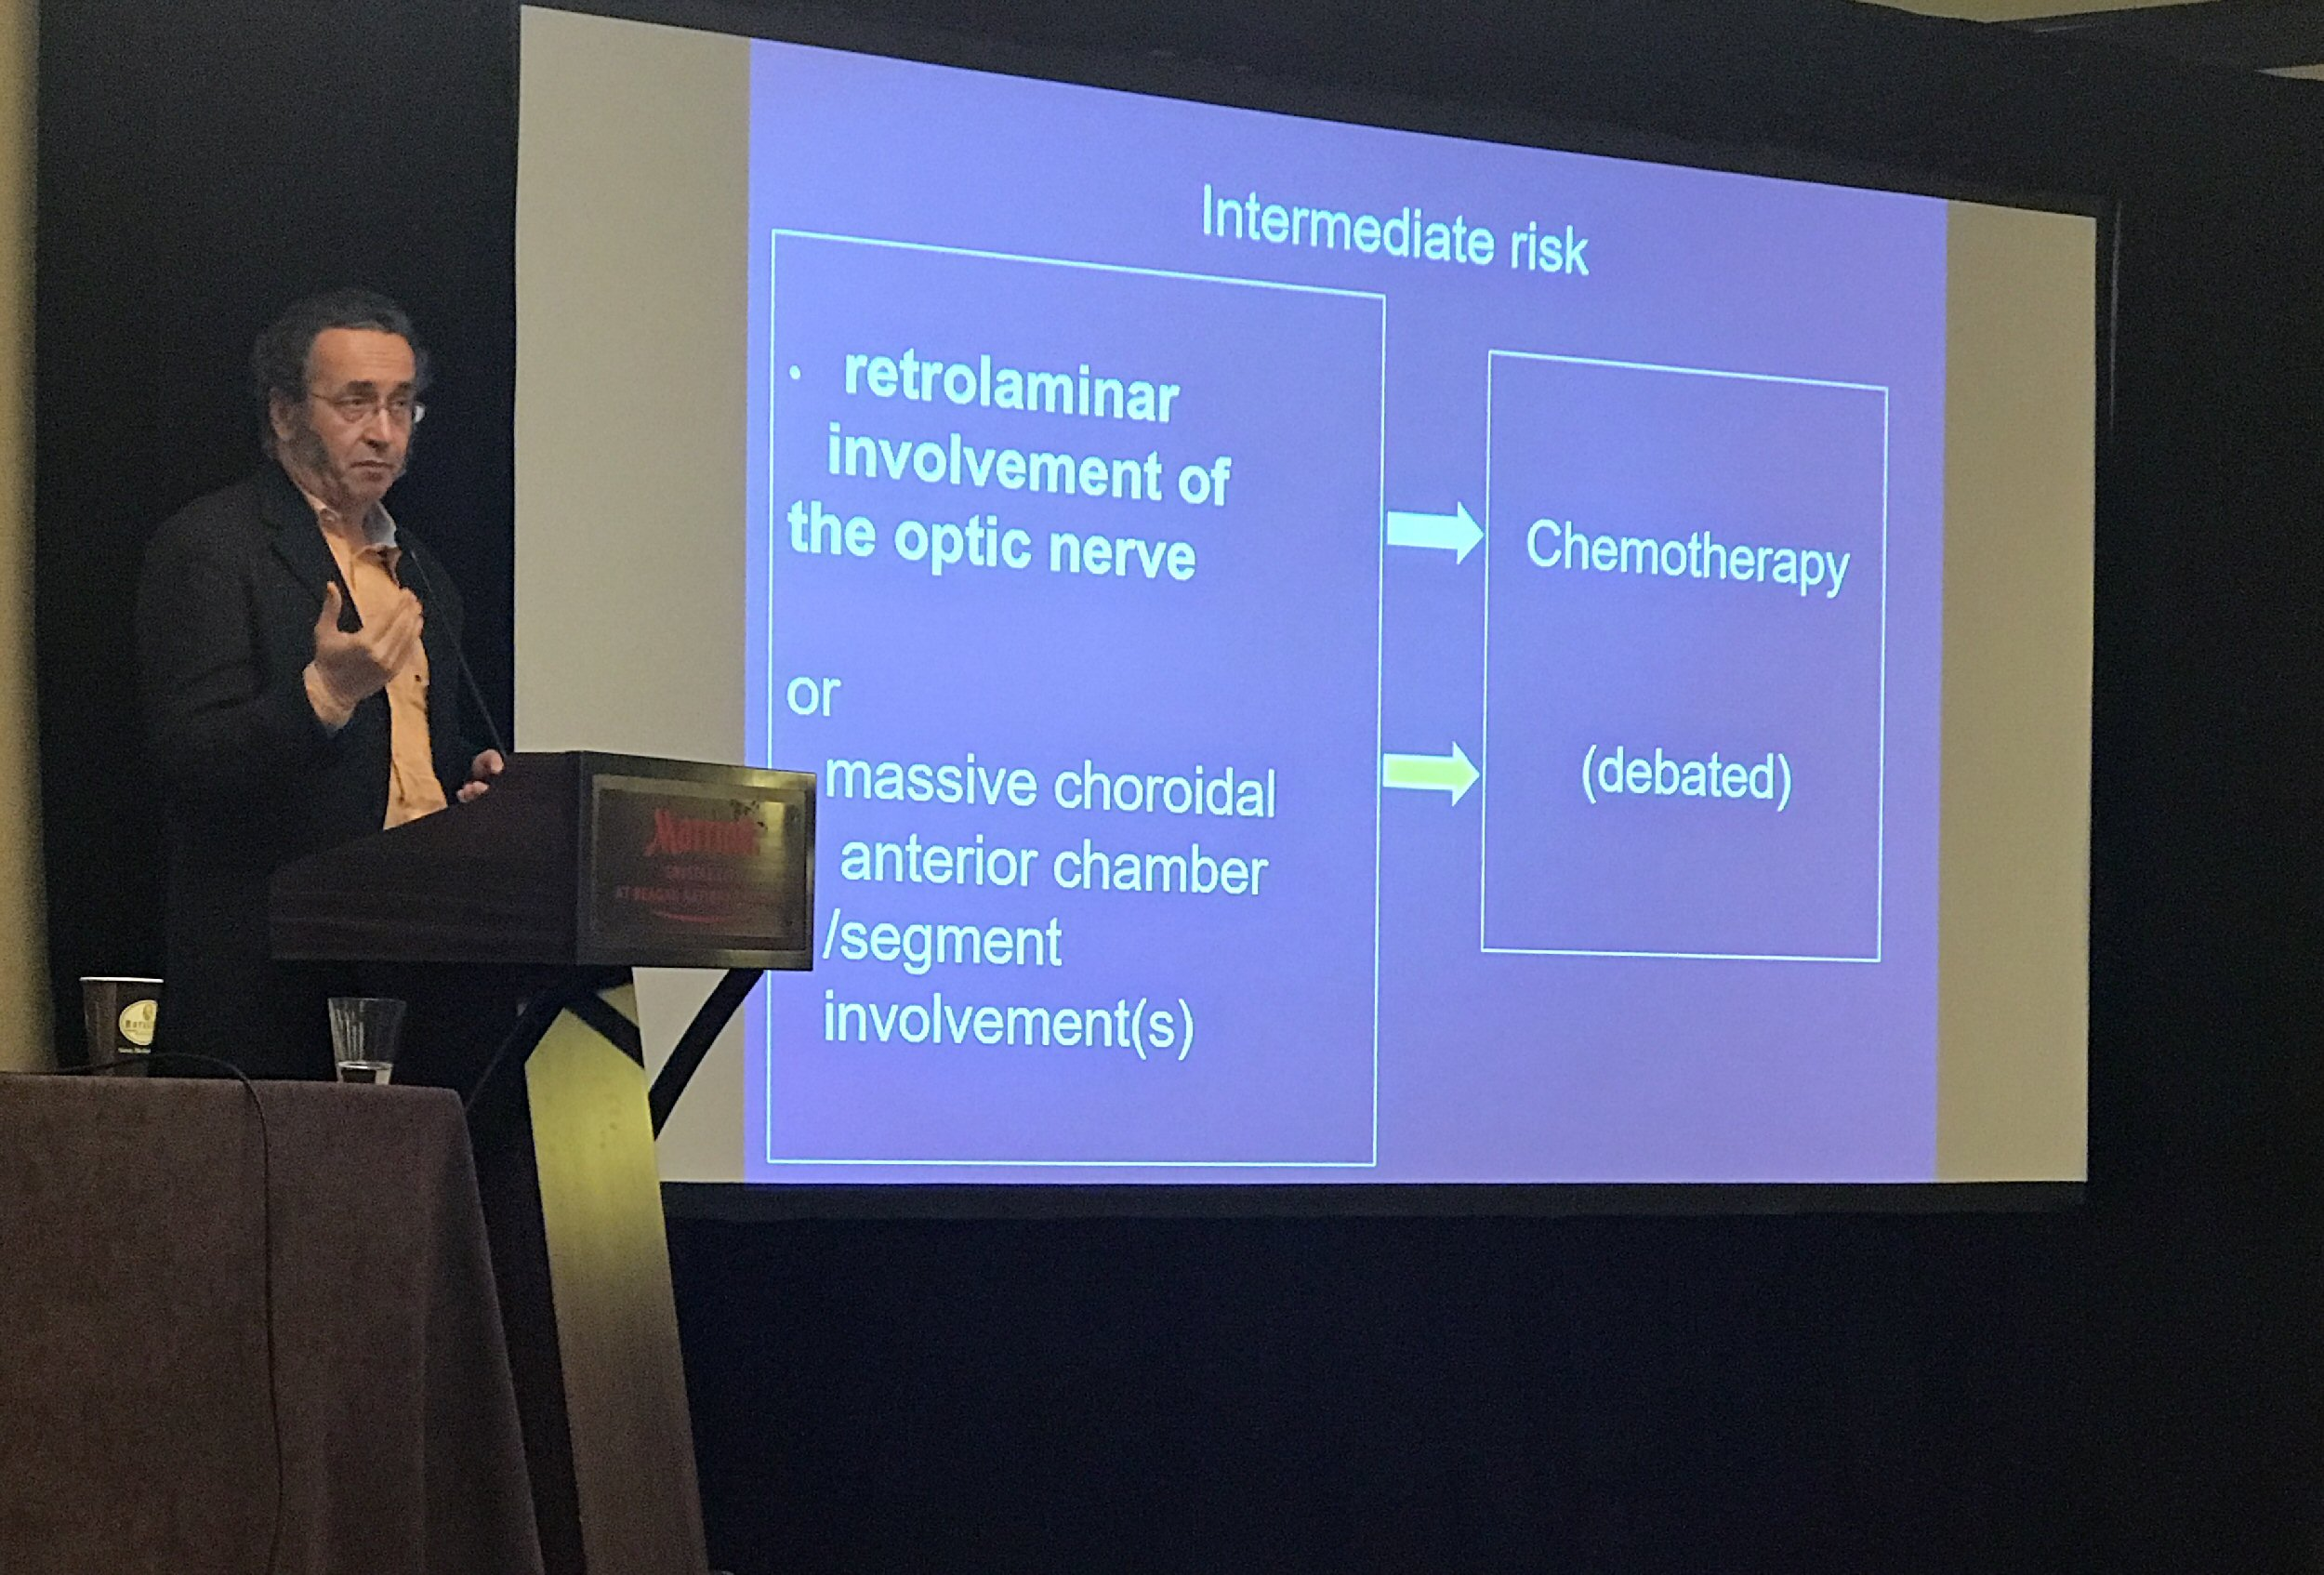 "Francois Doz discusses the debated areas of retinoblastoma pathology. The slide behind him is titled ""Intermediate Risk"" and is divided into four boxes. The two on the left are linked by arrows to the two on the right: ""Retrolaminar involvement of the optic nerve > chemotherapy; Massive choroidal / anterior chamber / segment involvement(s) > debated""."